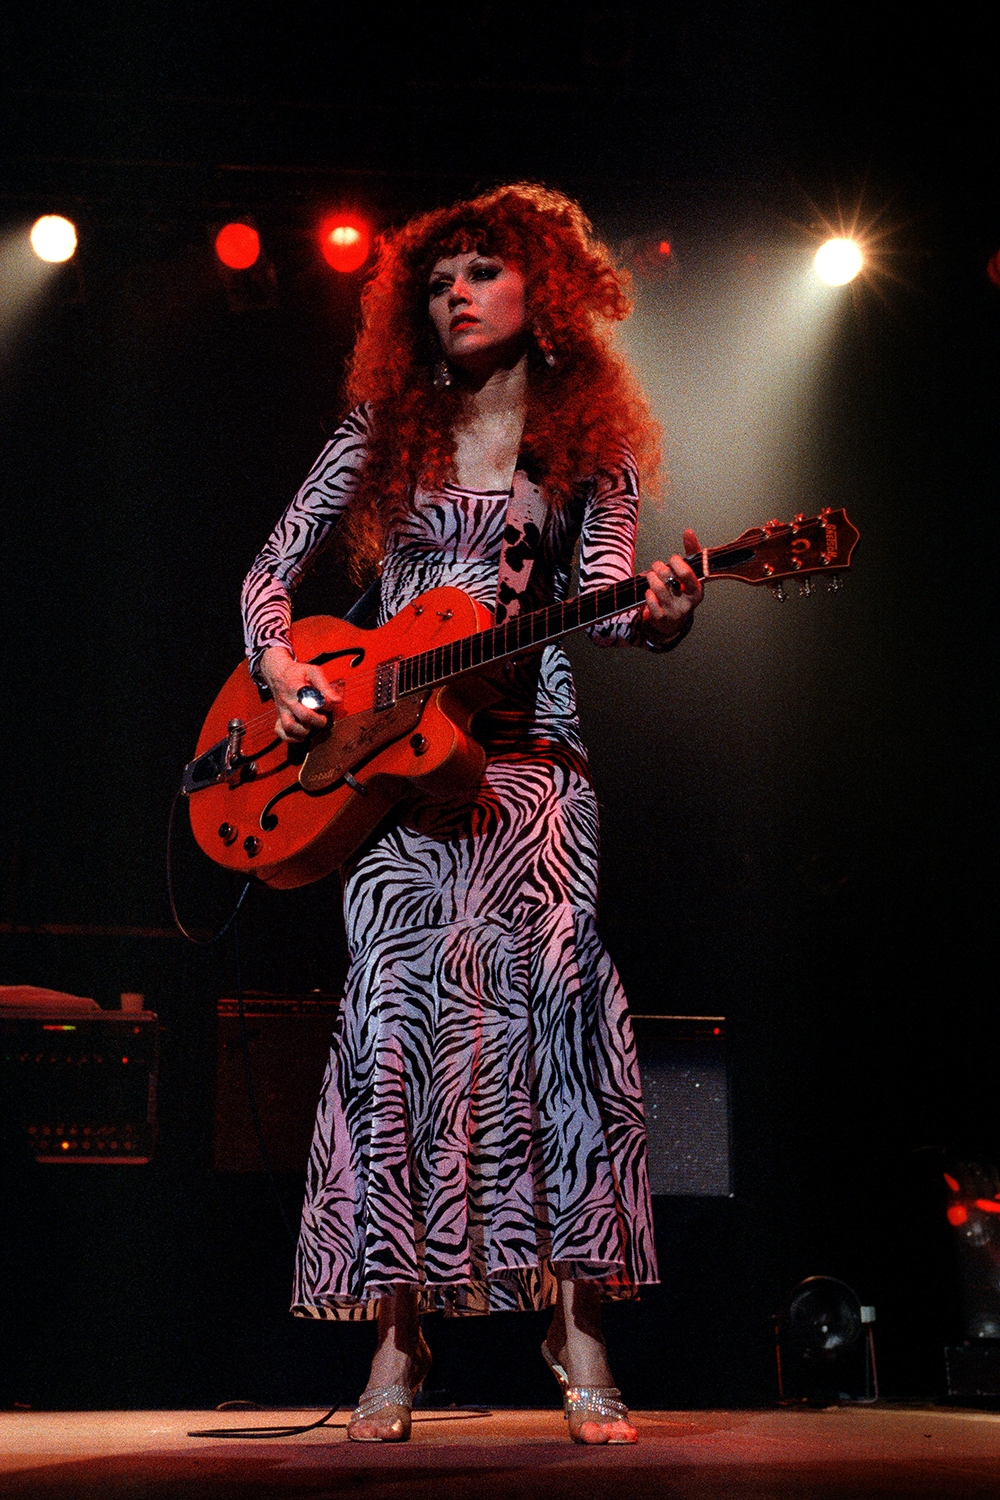 The Cramps - Poison Ivy